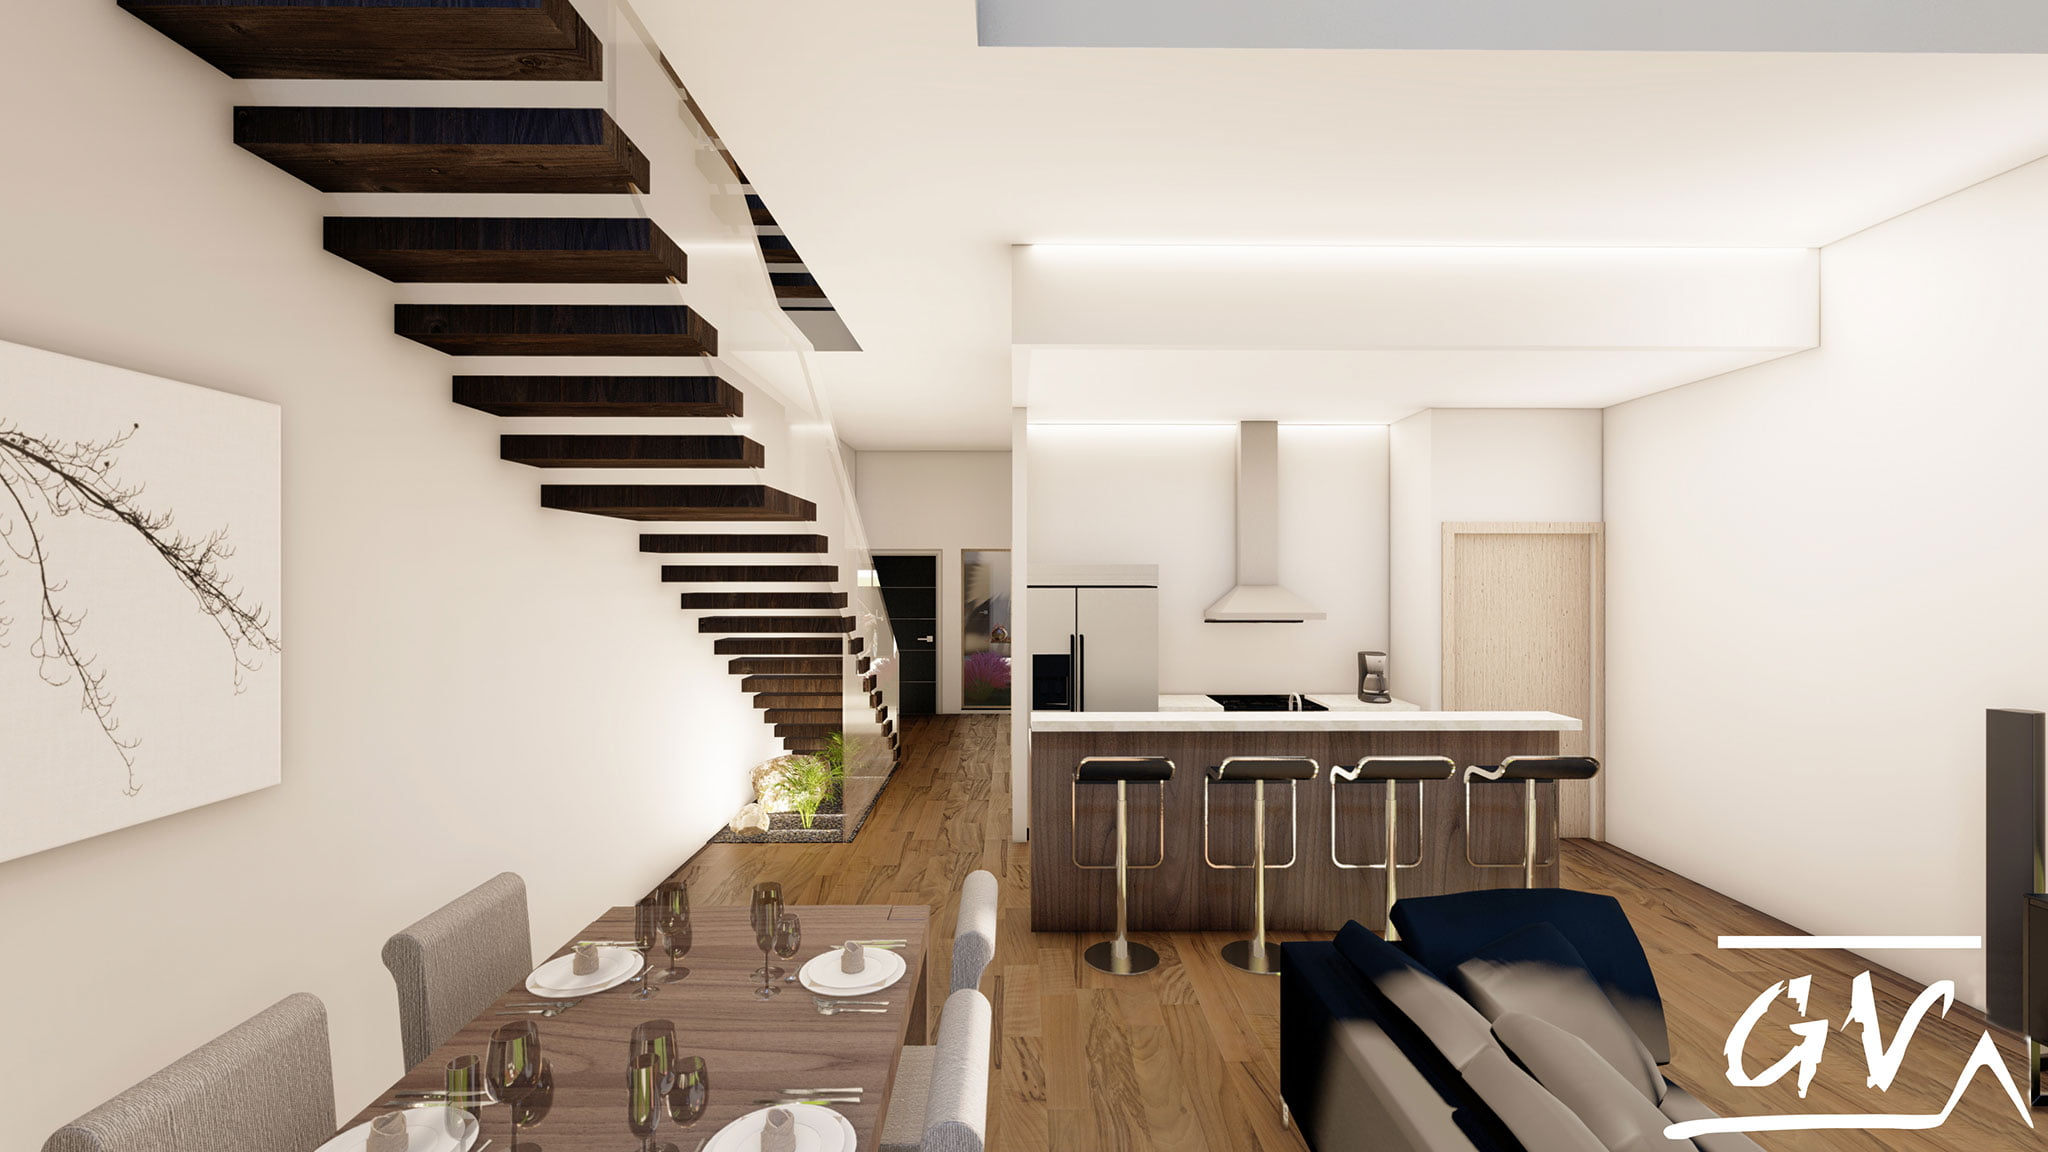 Housing between party walls in Museros (Valencia), an interior design project by de GV Arquitecnia